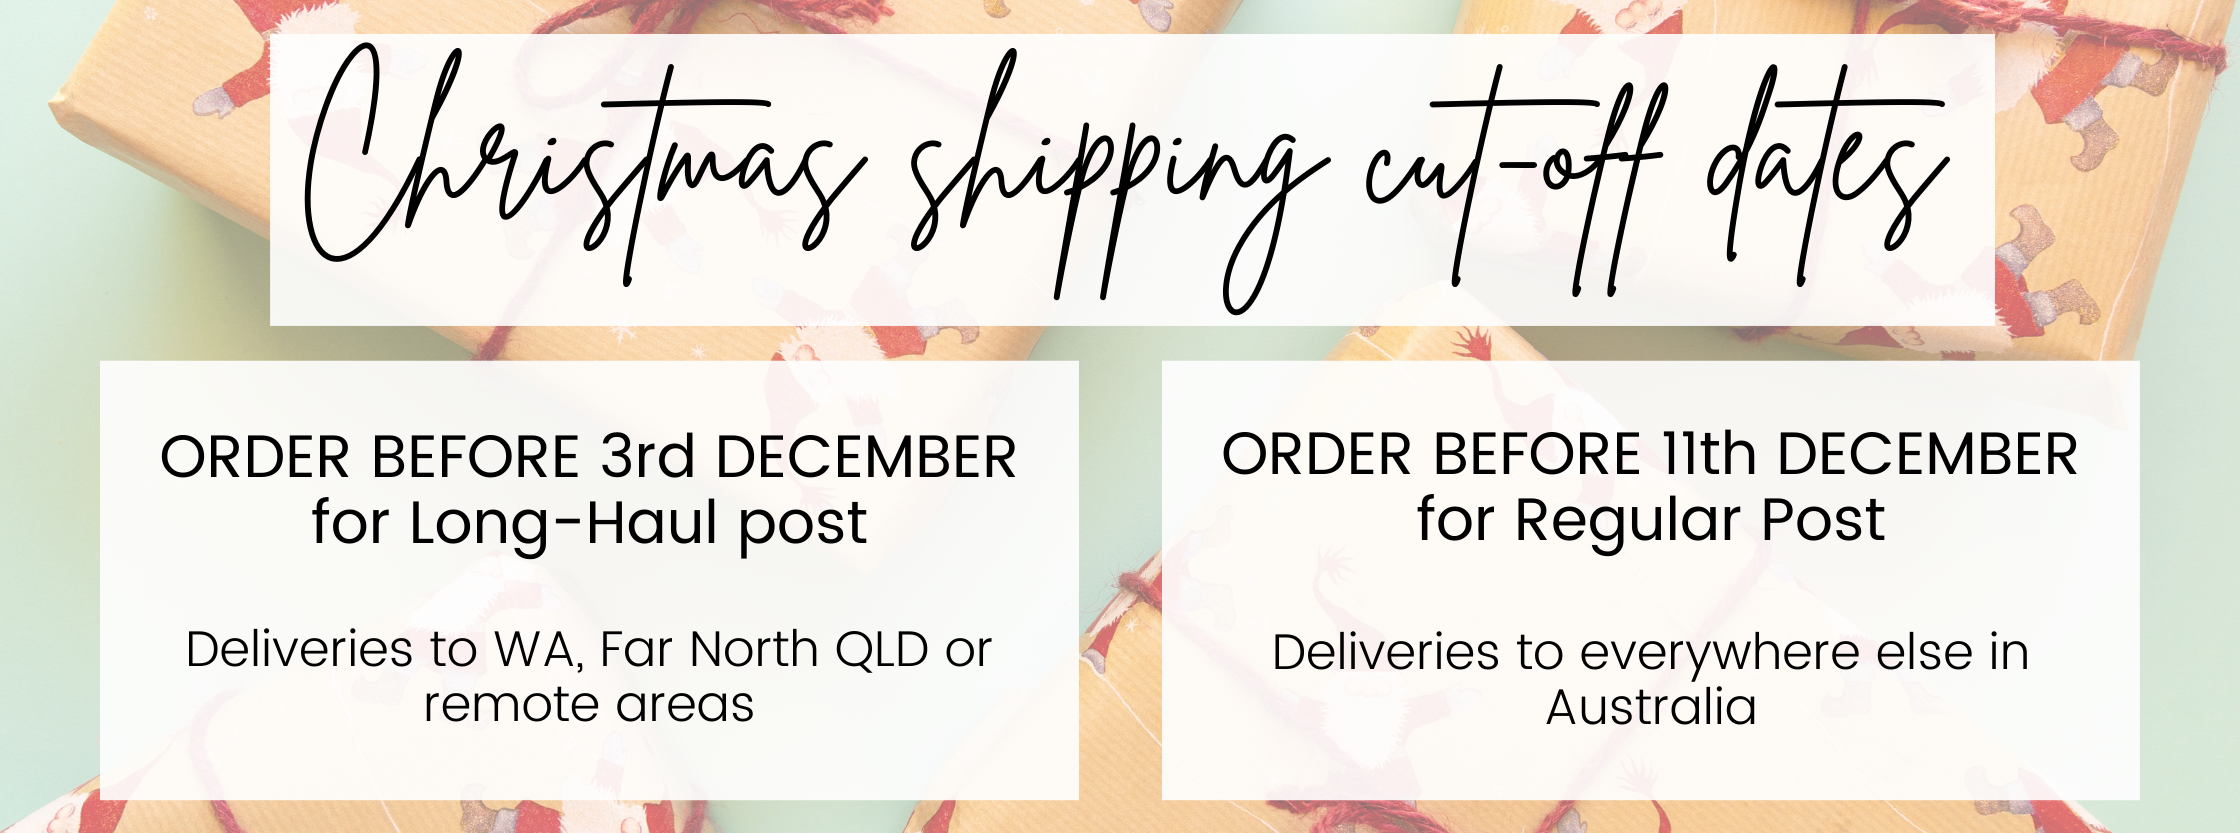 Christmas Gift Shipping Cut off Dates for 2020